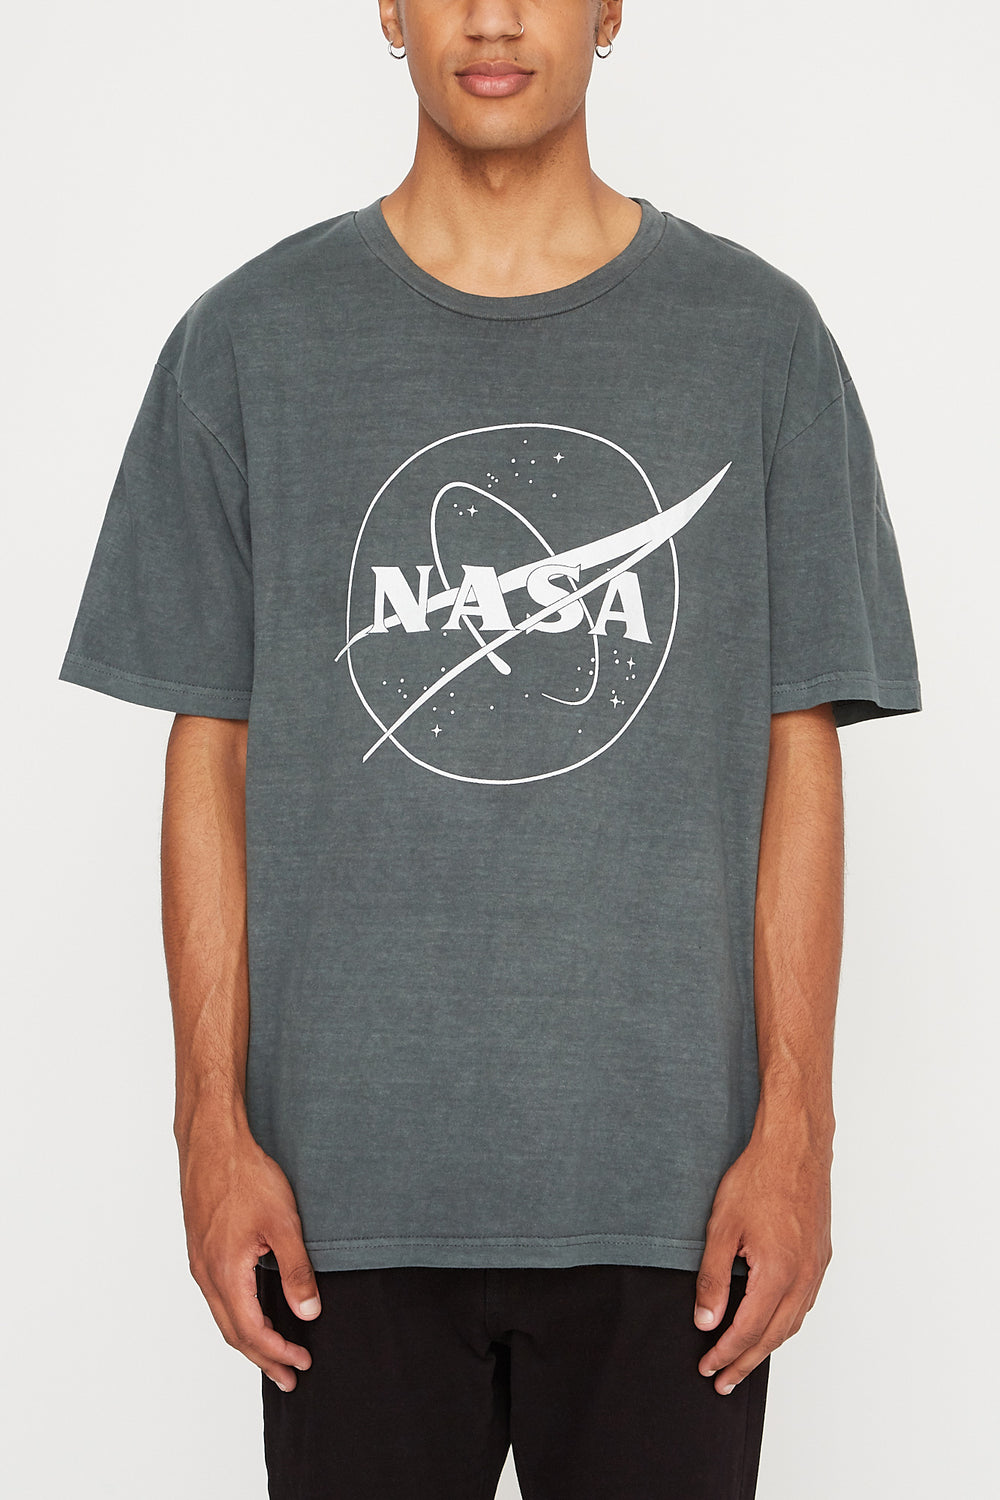 T-Shirt Imprimé Satellite NASA Homme Noir